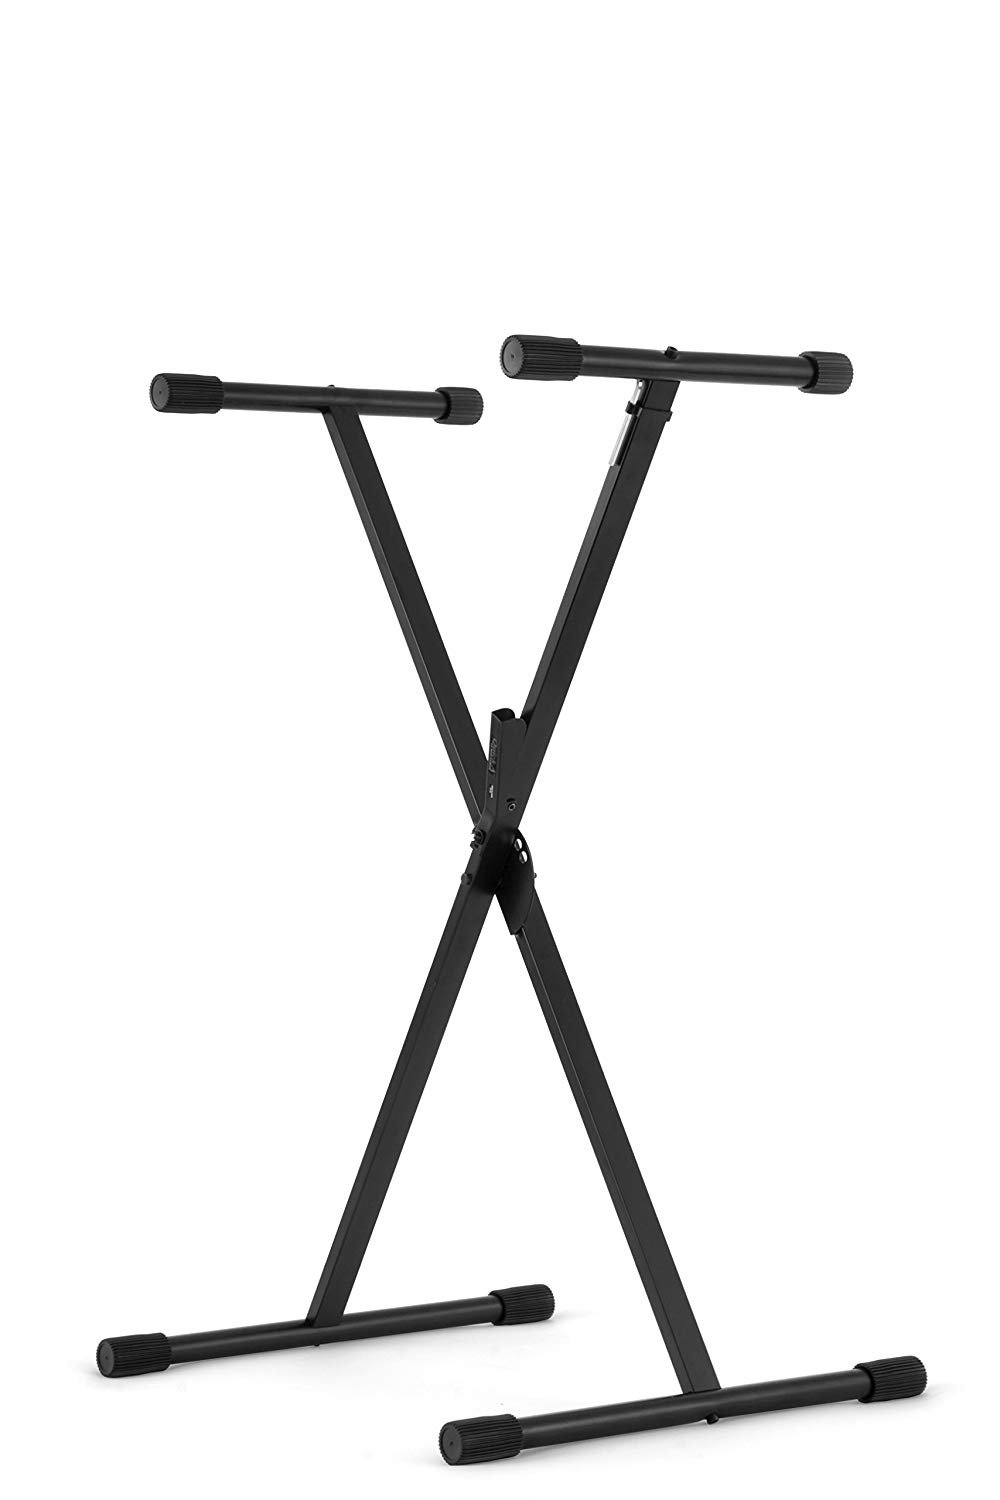 Nomad Stands Single X Style Keyboard Stand